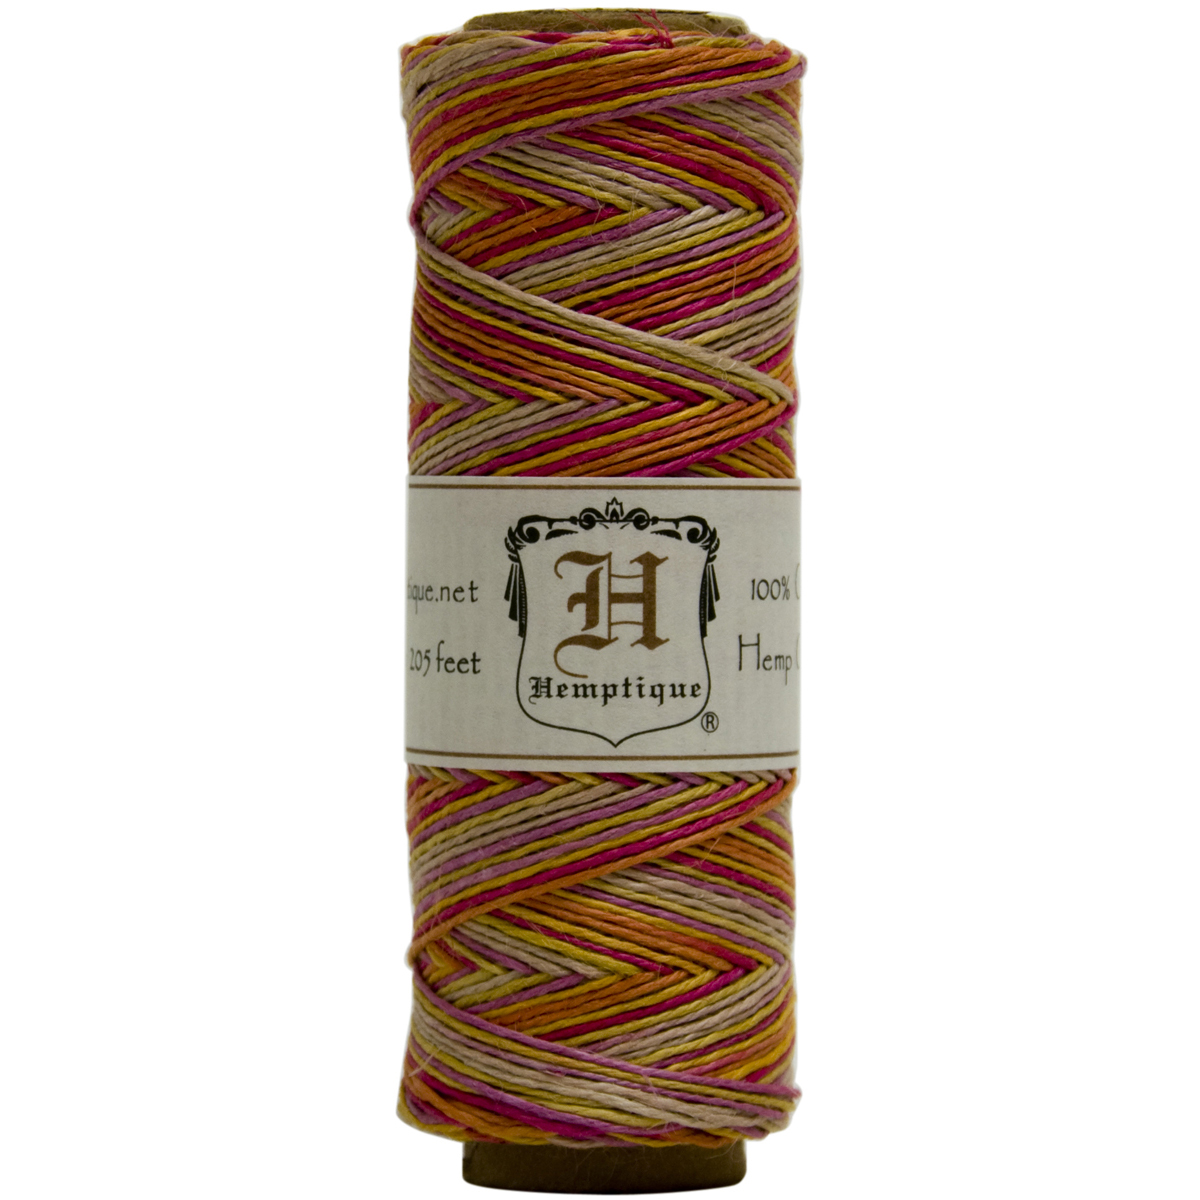 Hemptique Hemp Cord Spool Variegated 10#